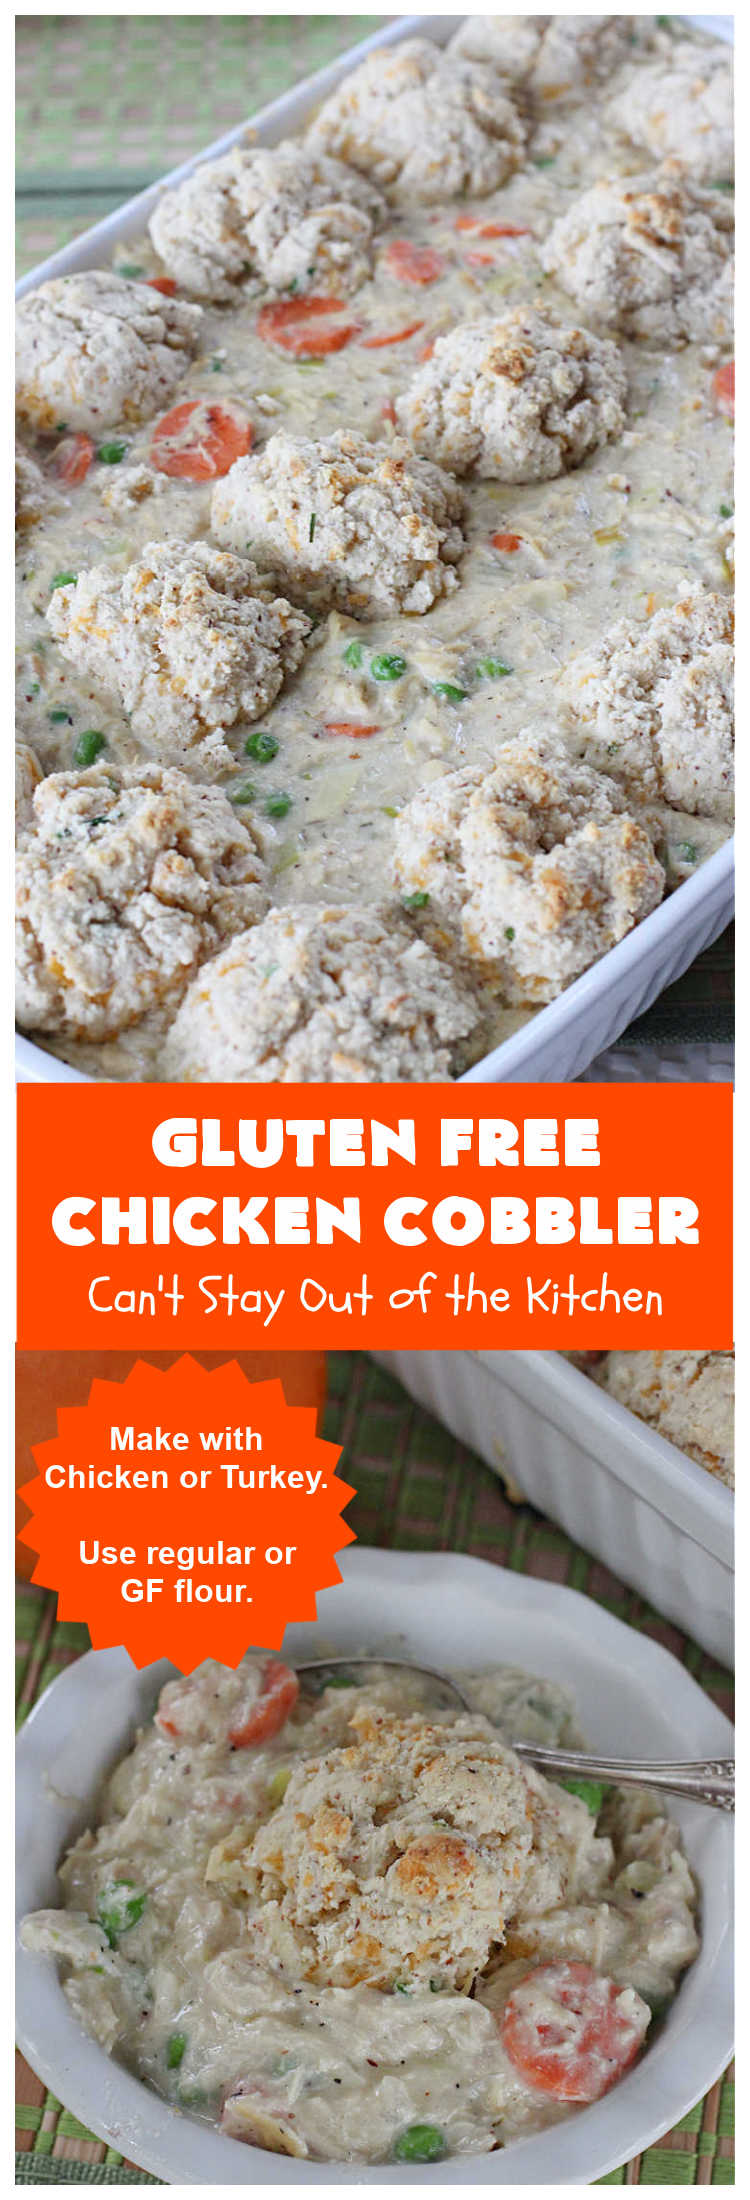 Gluten Free Chicken Cobbler   Can't Stay Out of the Kitchen   this #ChickenCobbler can't be beat! It's fantastic with #chicken or #turkey & can be made #GlutenFree or NOT - as you prefer. Terrific way to use up leftover rotisserie chicken or #Thanksgiving turkey. Our family loves this #recipe. #GlutenFreeChickenCobbler #ChickenPotPie #ChickenAndDumplings